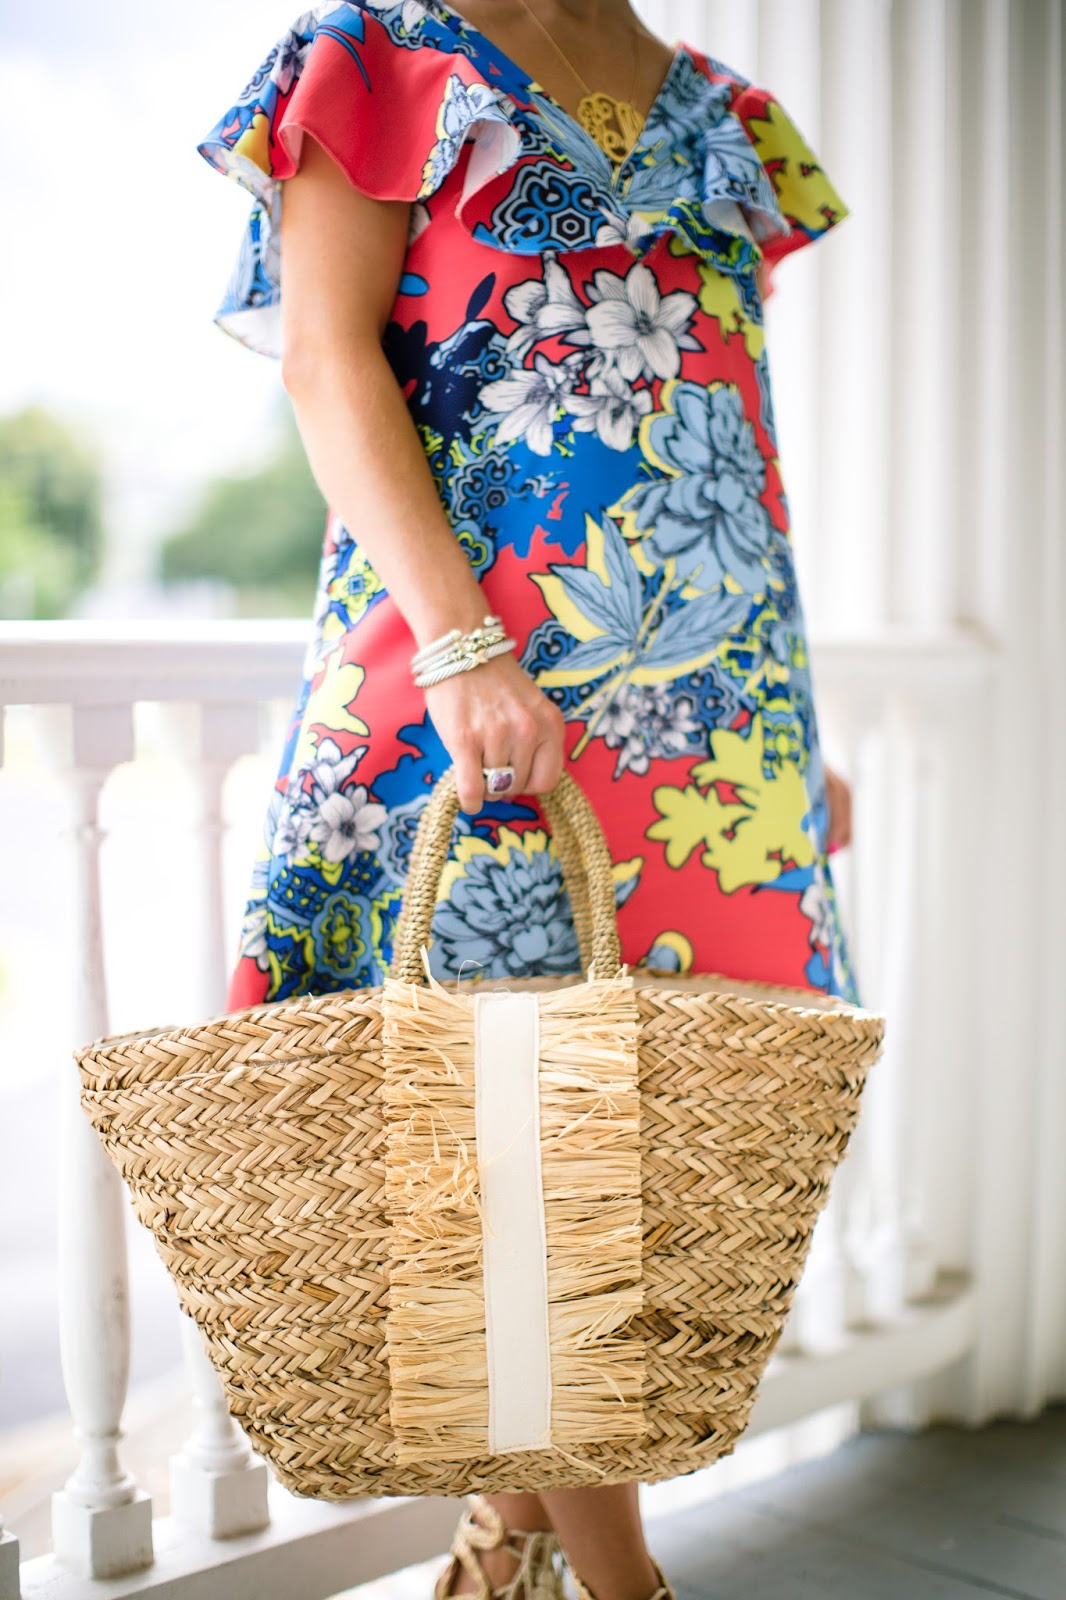 Straw Tote - Click through to see more on Something Delightful Blog!